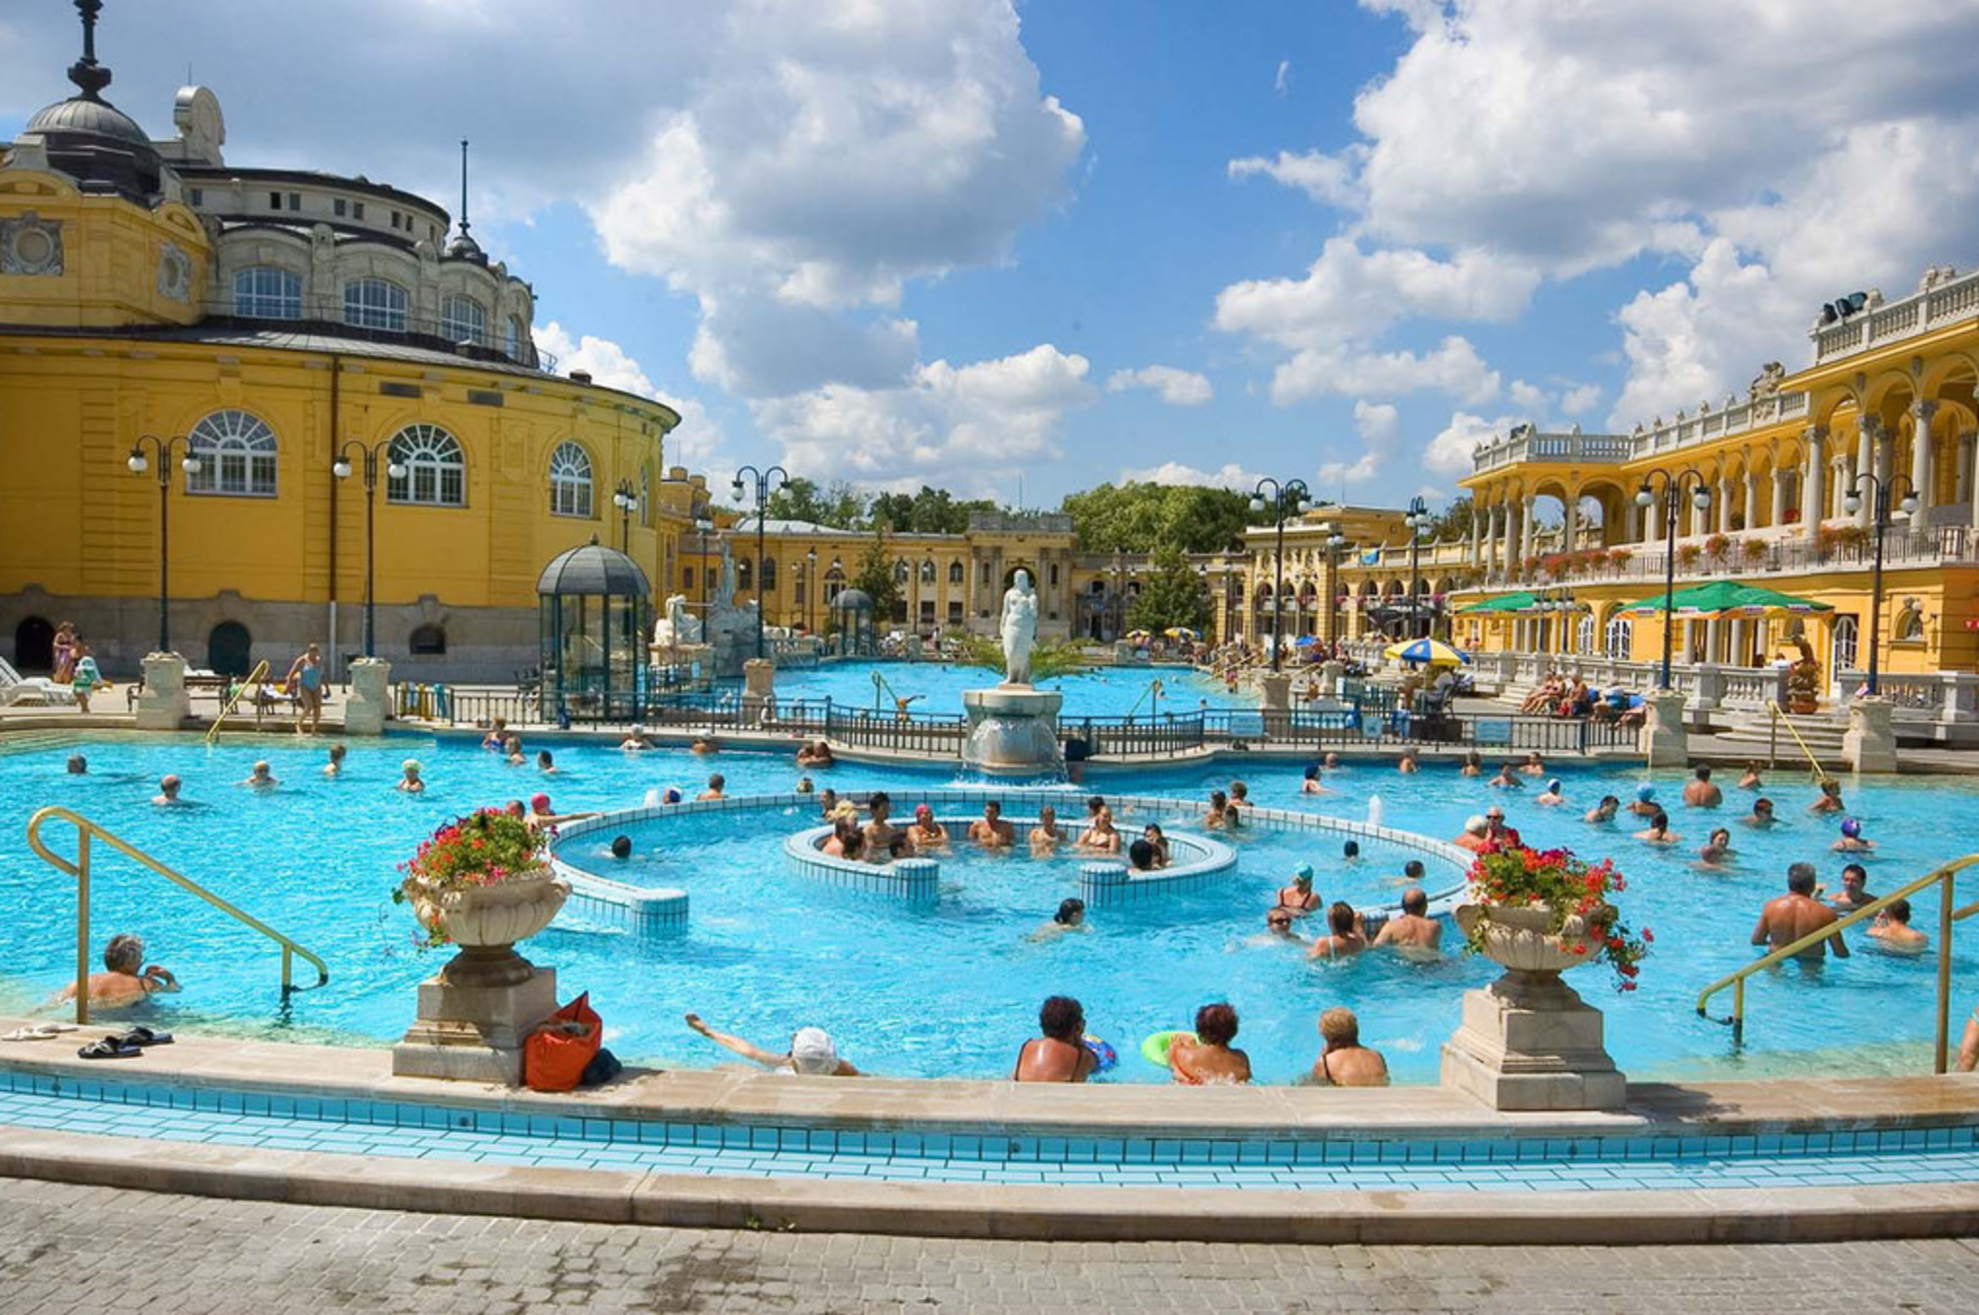 The best thermal baths in Budapest